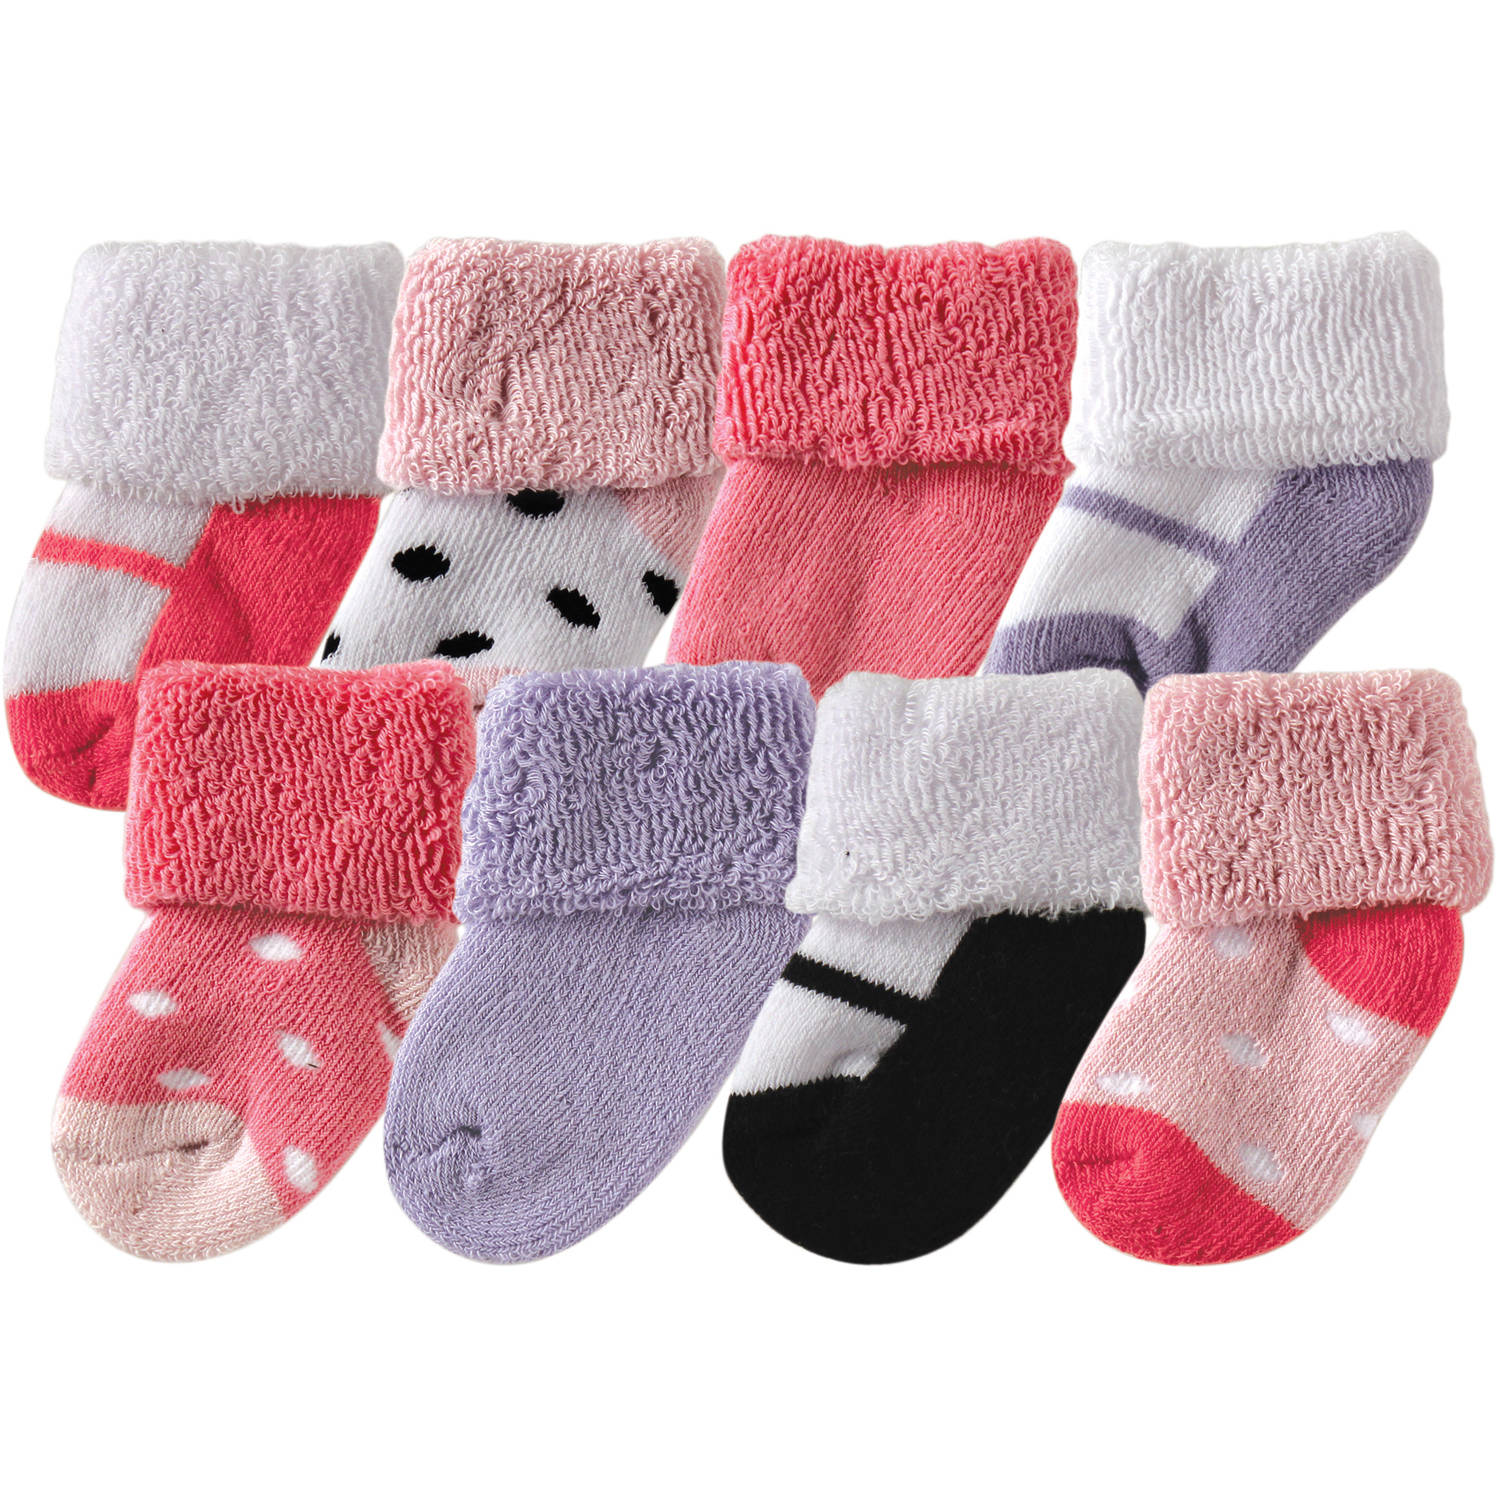 Luvable Friends Newborn Baby Girls Socks 8-Pack